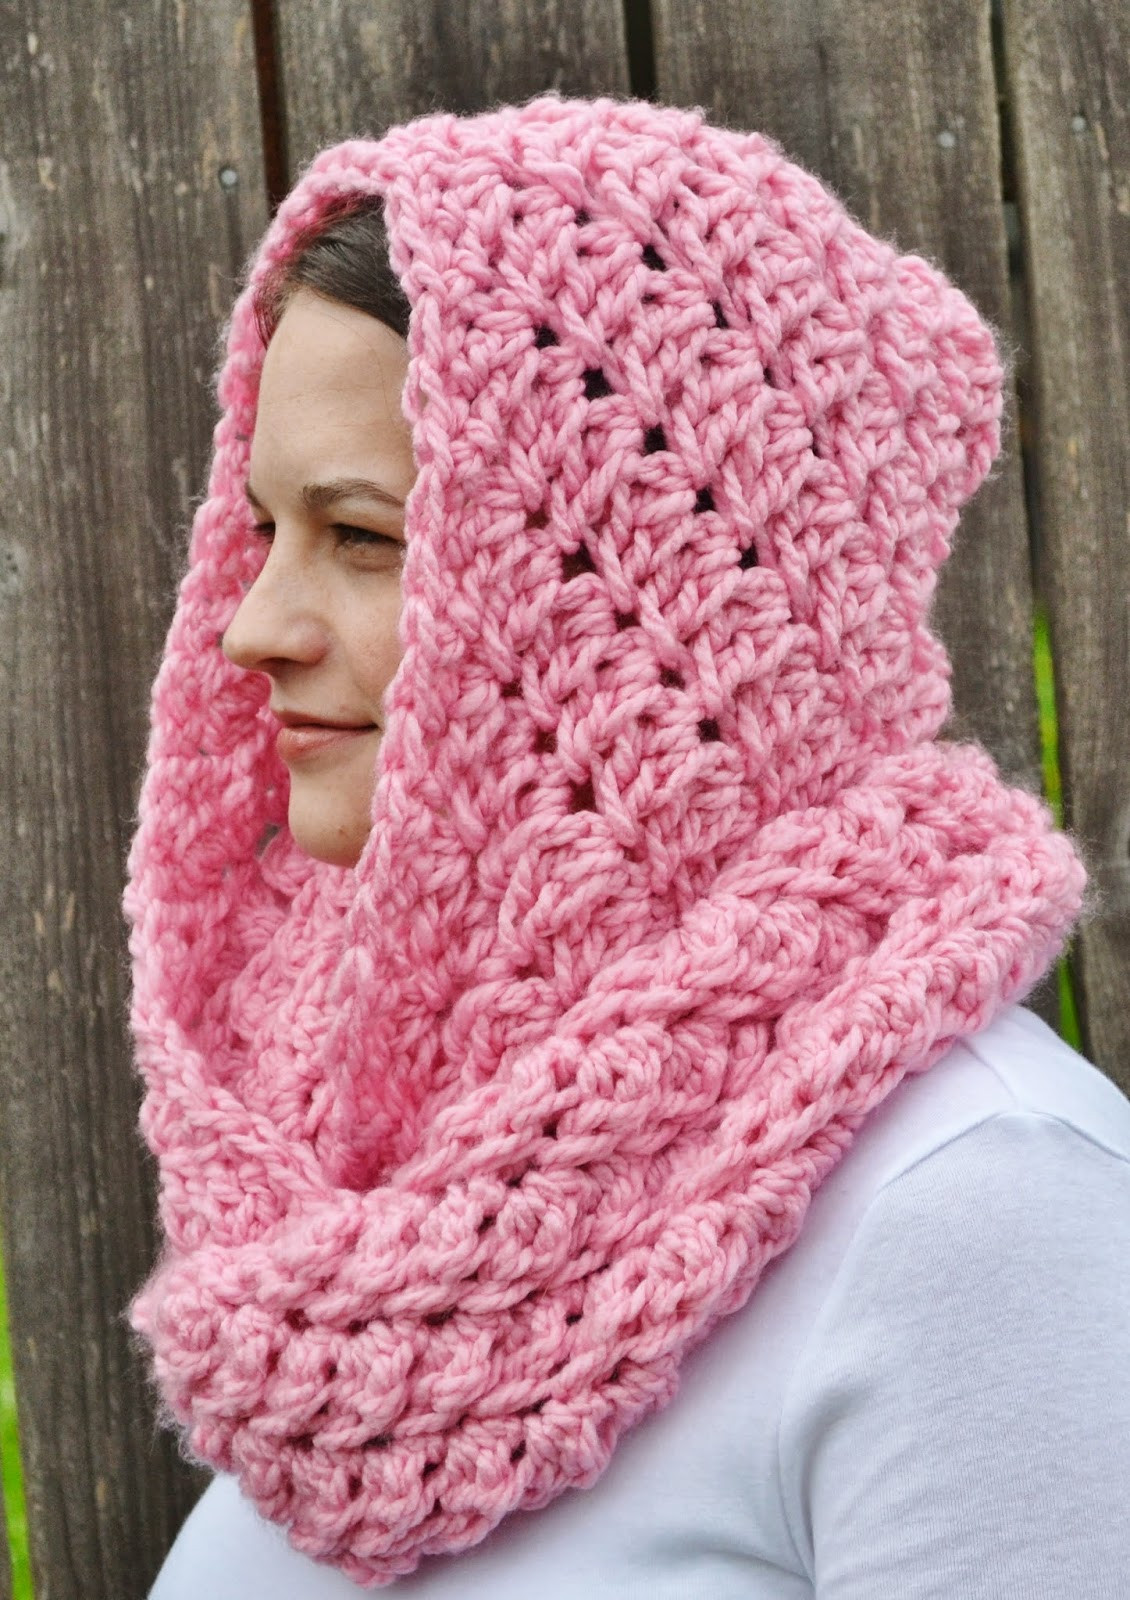 New Keep Yourself Cozy This Winter with these 22 Crocheted Crochet Hooded Scarf Of Wonderful 48 Images Crochet Hooded Scarf